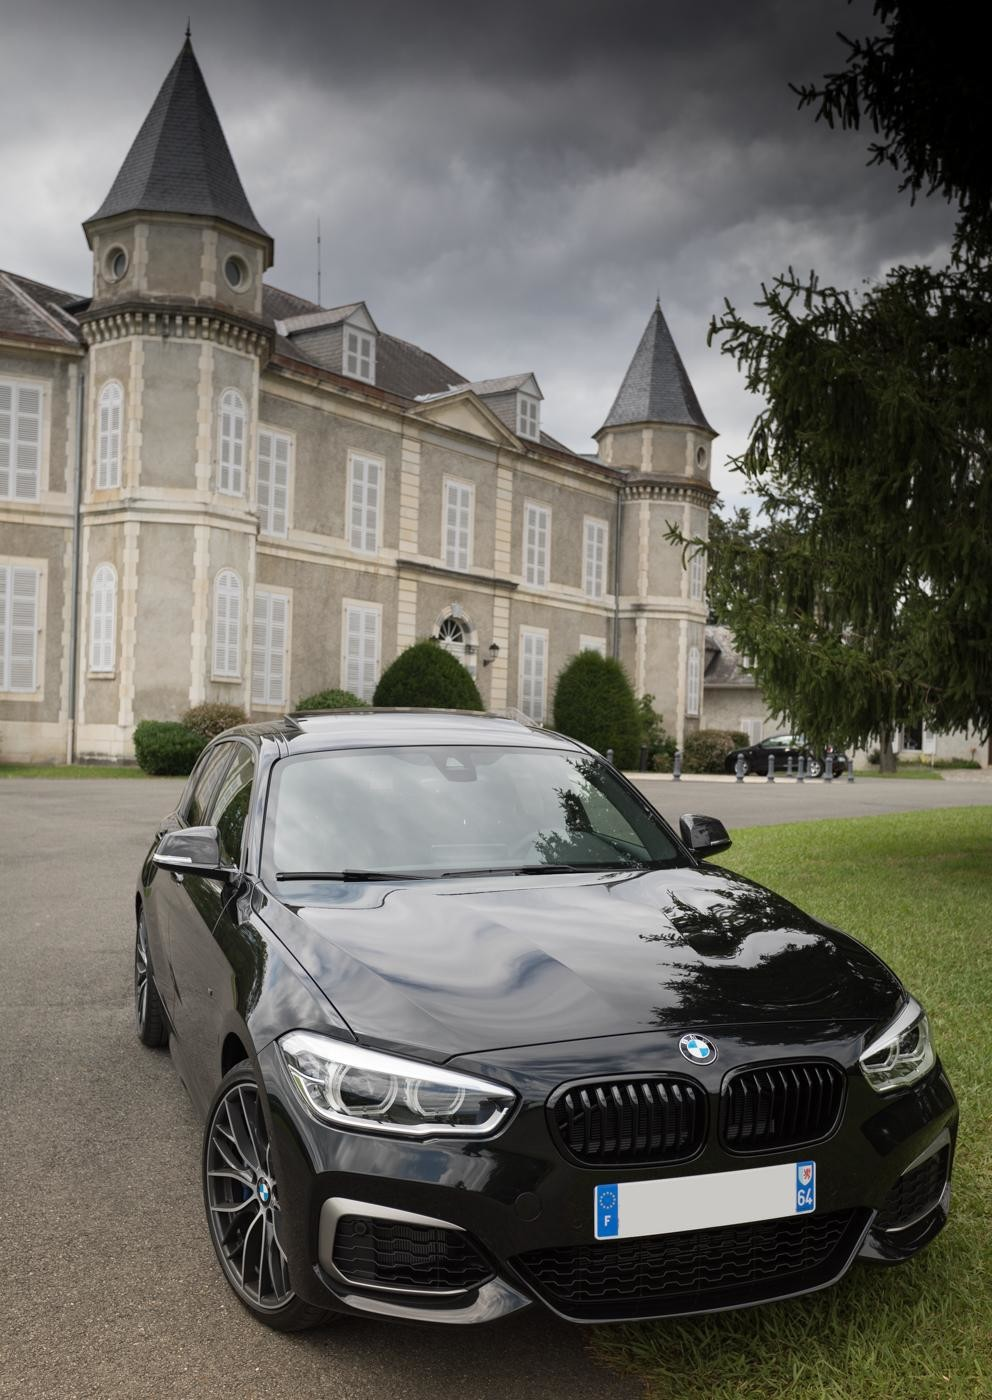 bmw m140i xdrive m performance 45579 m140i drive mperformance carlitos16 photos club. Black Bedroom Furniture Sets. Home Design Ideas